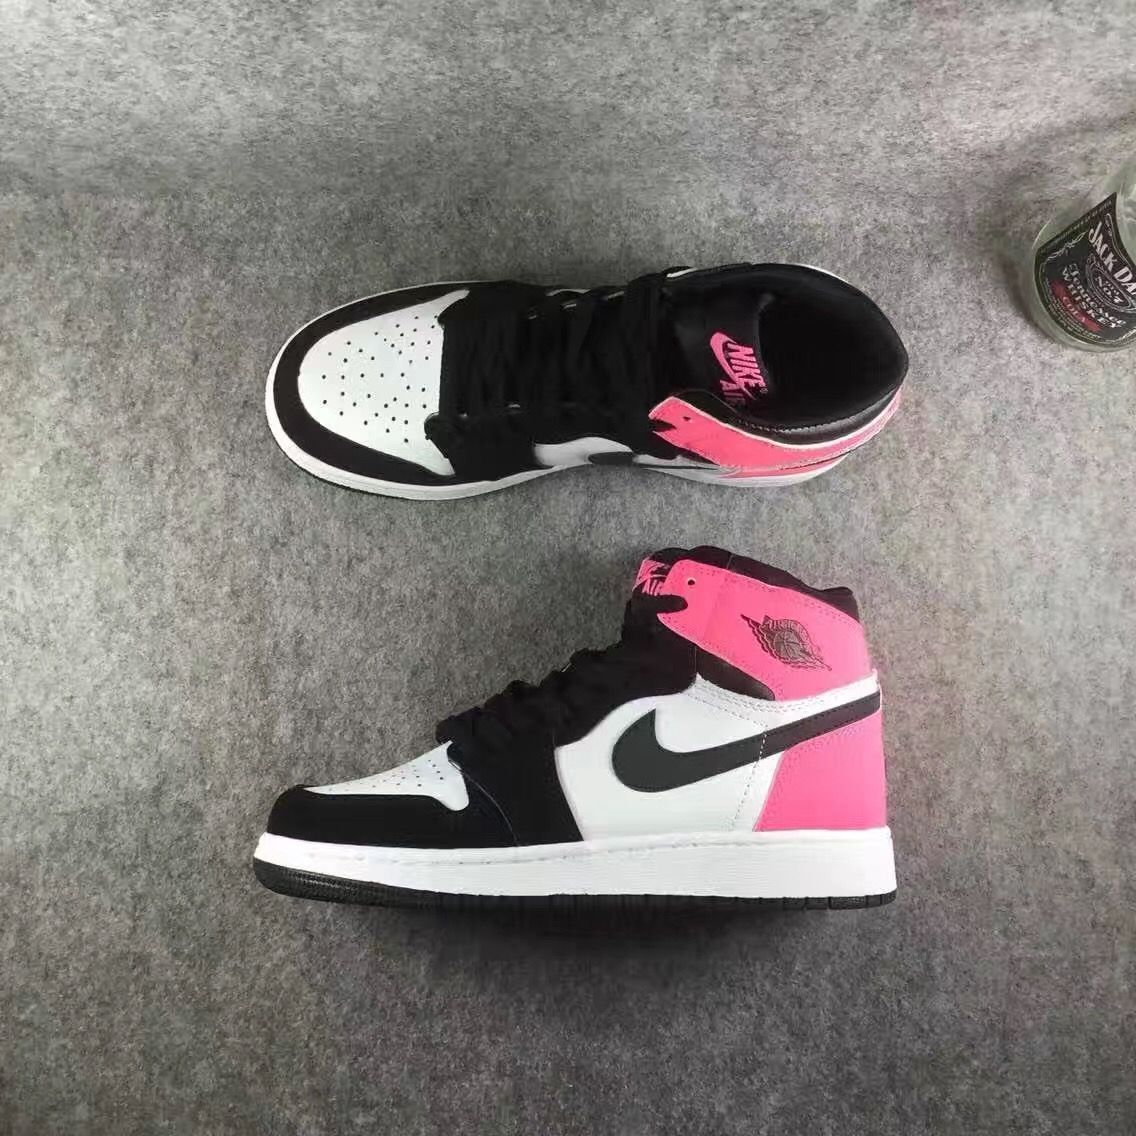 Nike Air Jordan 1 RETRO HIGH OG GS Valentines Day  SUPCLUB High Street